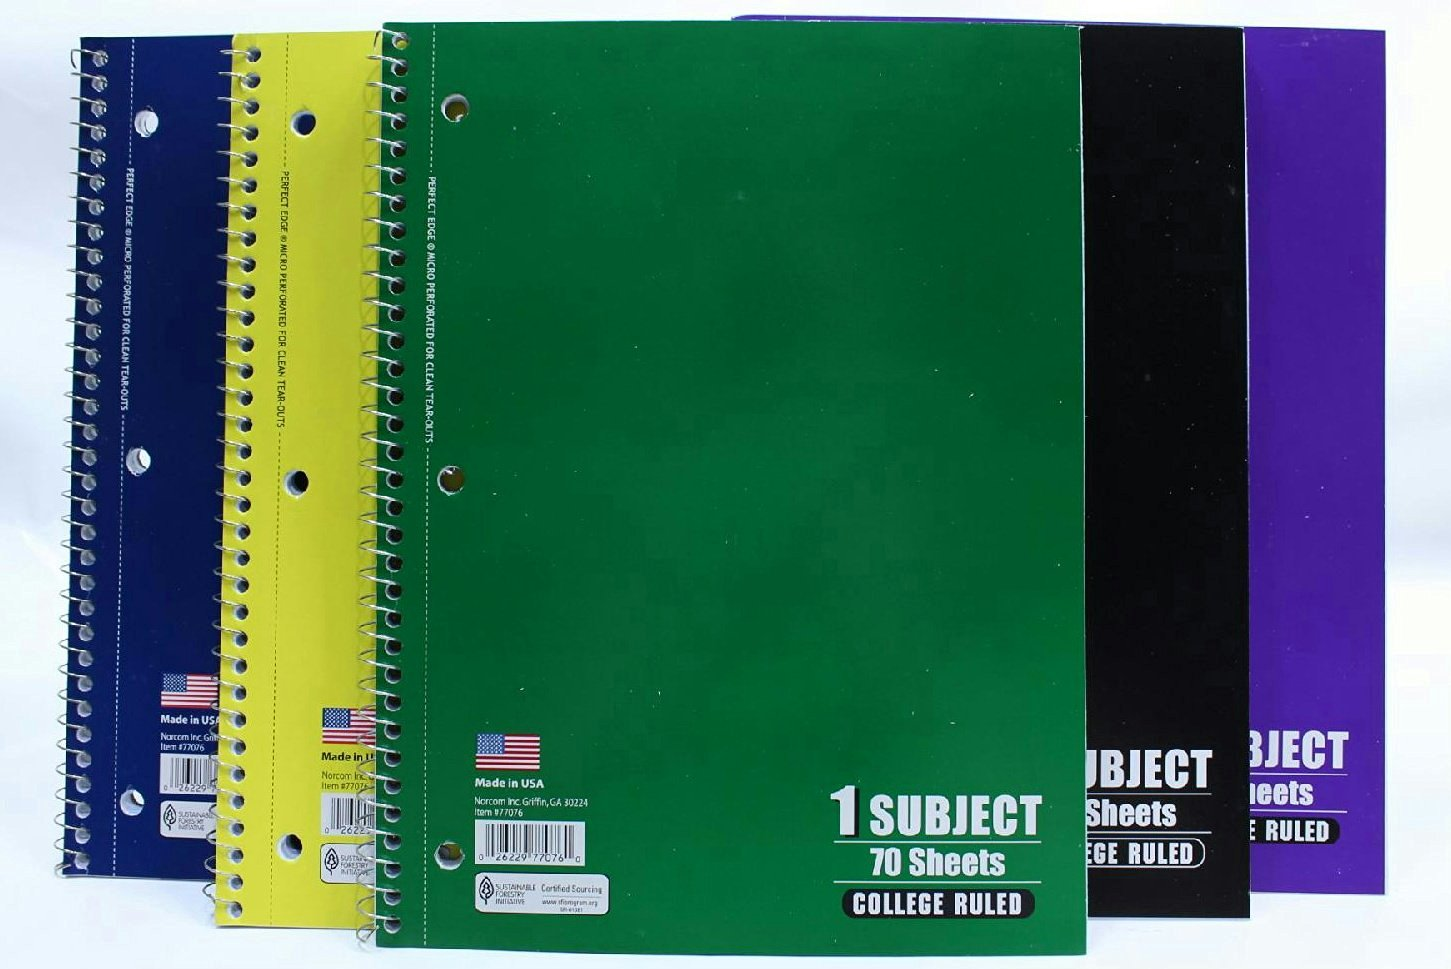 Buy Norcom College Ruled Spiral Bound 70 Sheet Notebooks